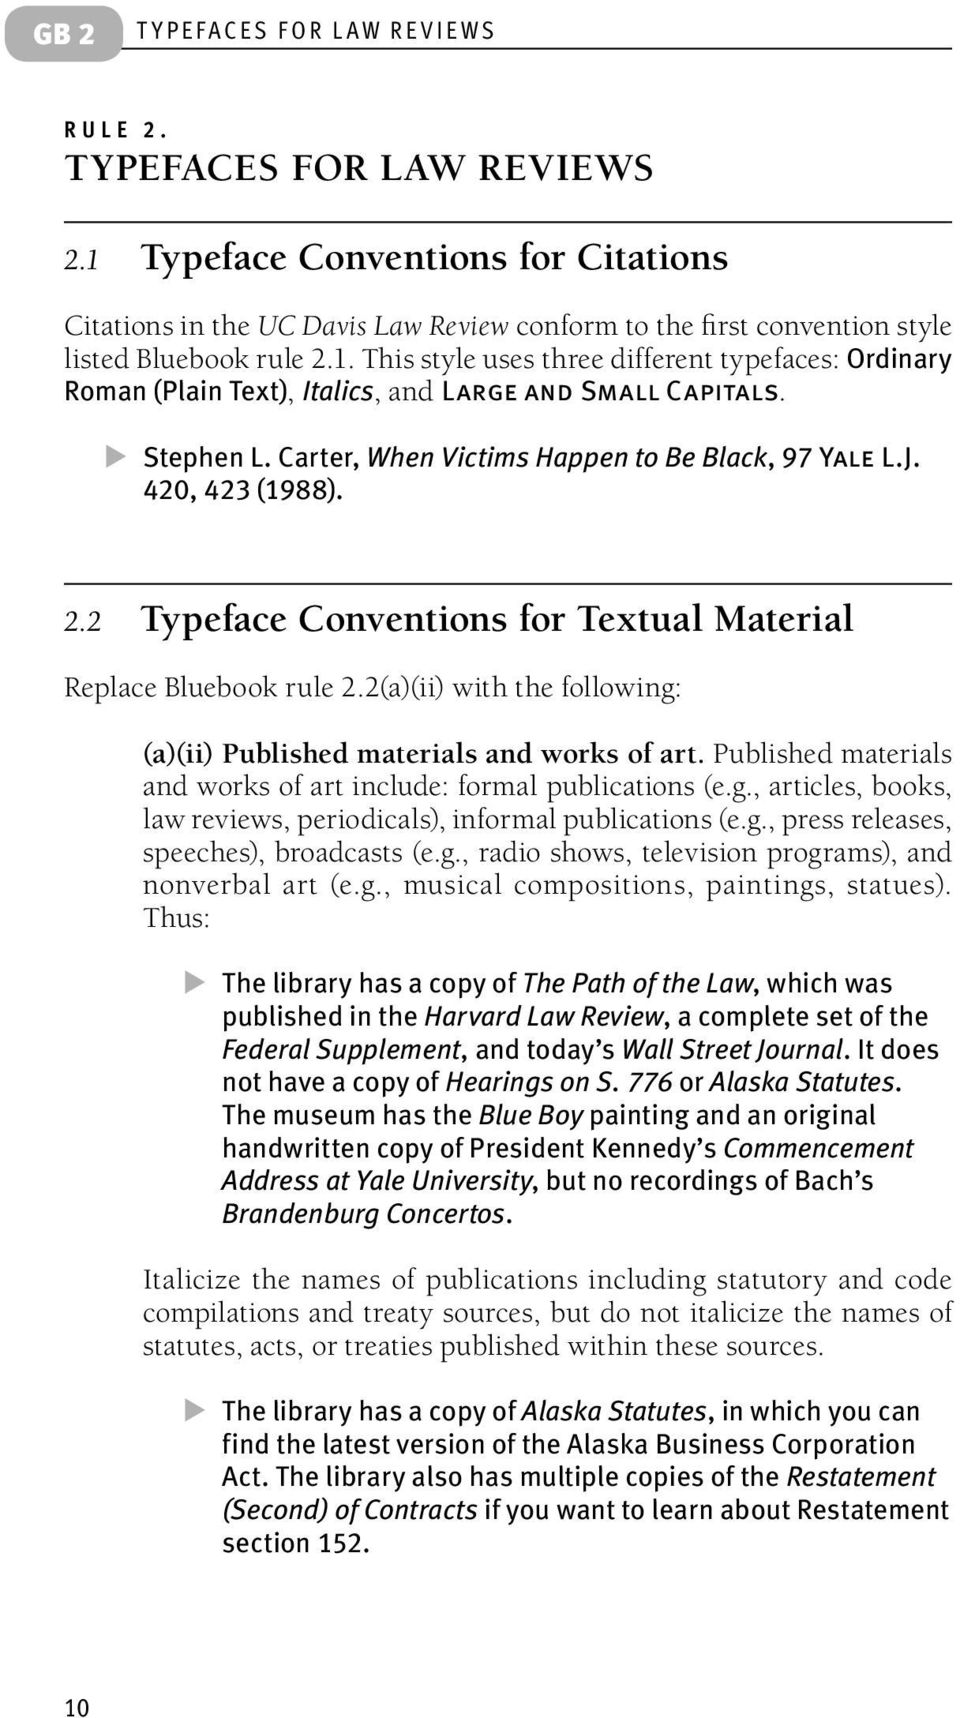 Stephen L. Carter, When Victims Happen to Be Black, 97 Yale L.J. 420, 423 (1988). 2.2 Typeface Conventions for Textual Material Replace Bluebook rule 2.